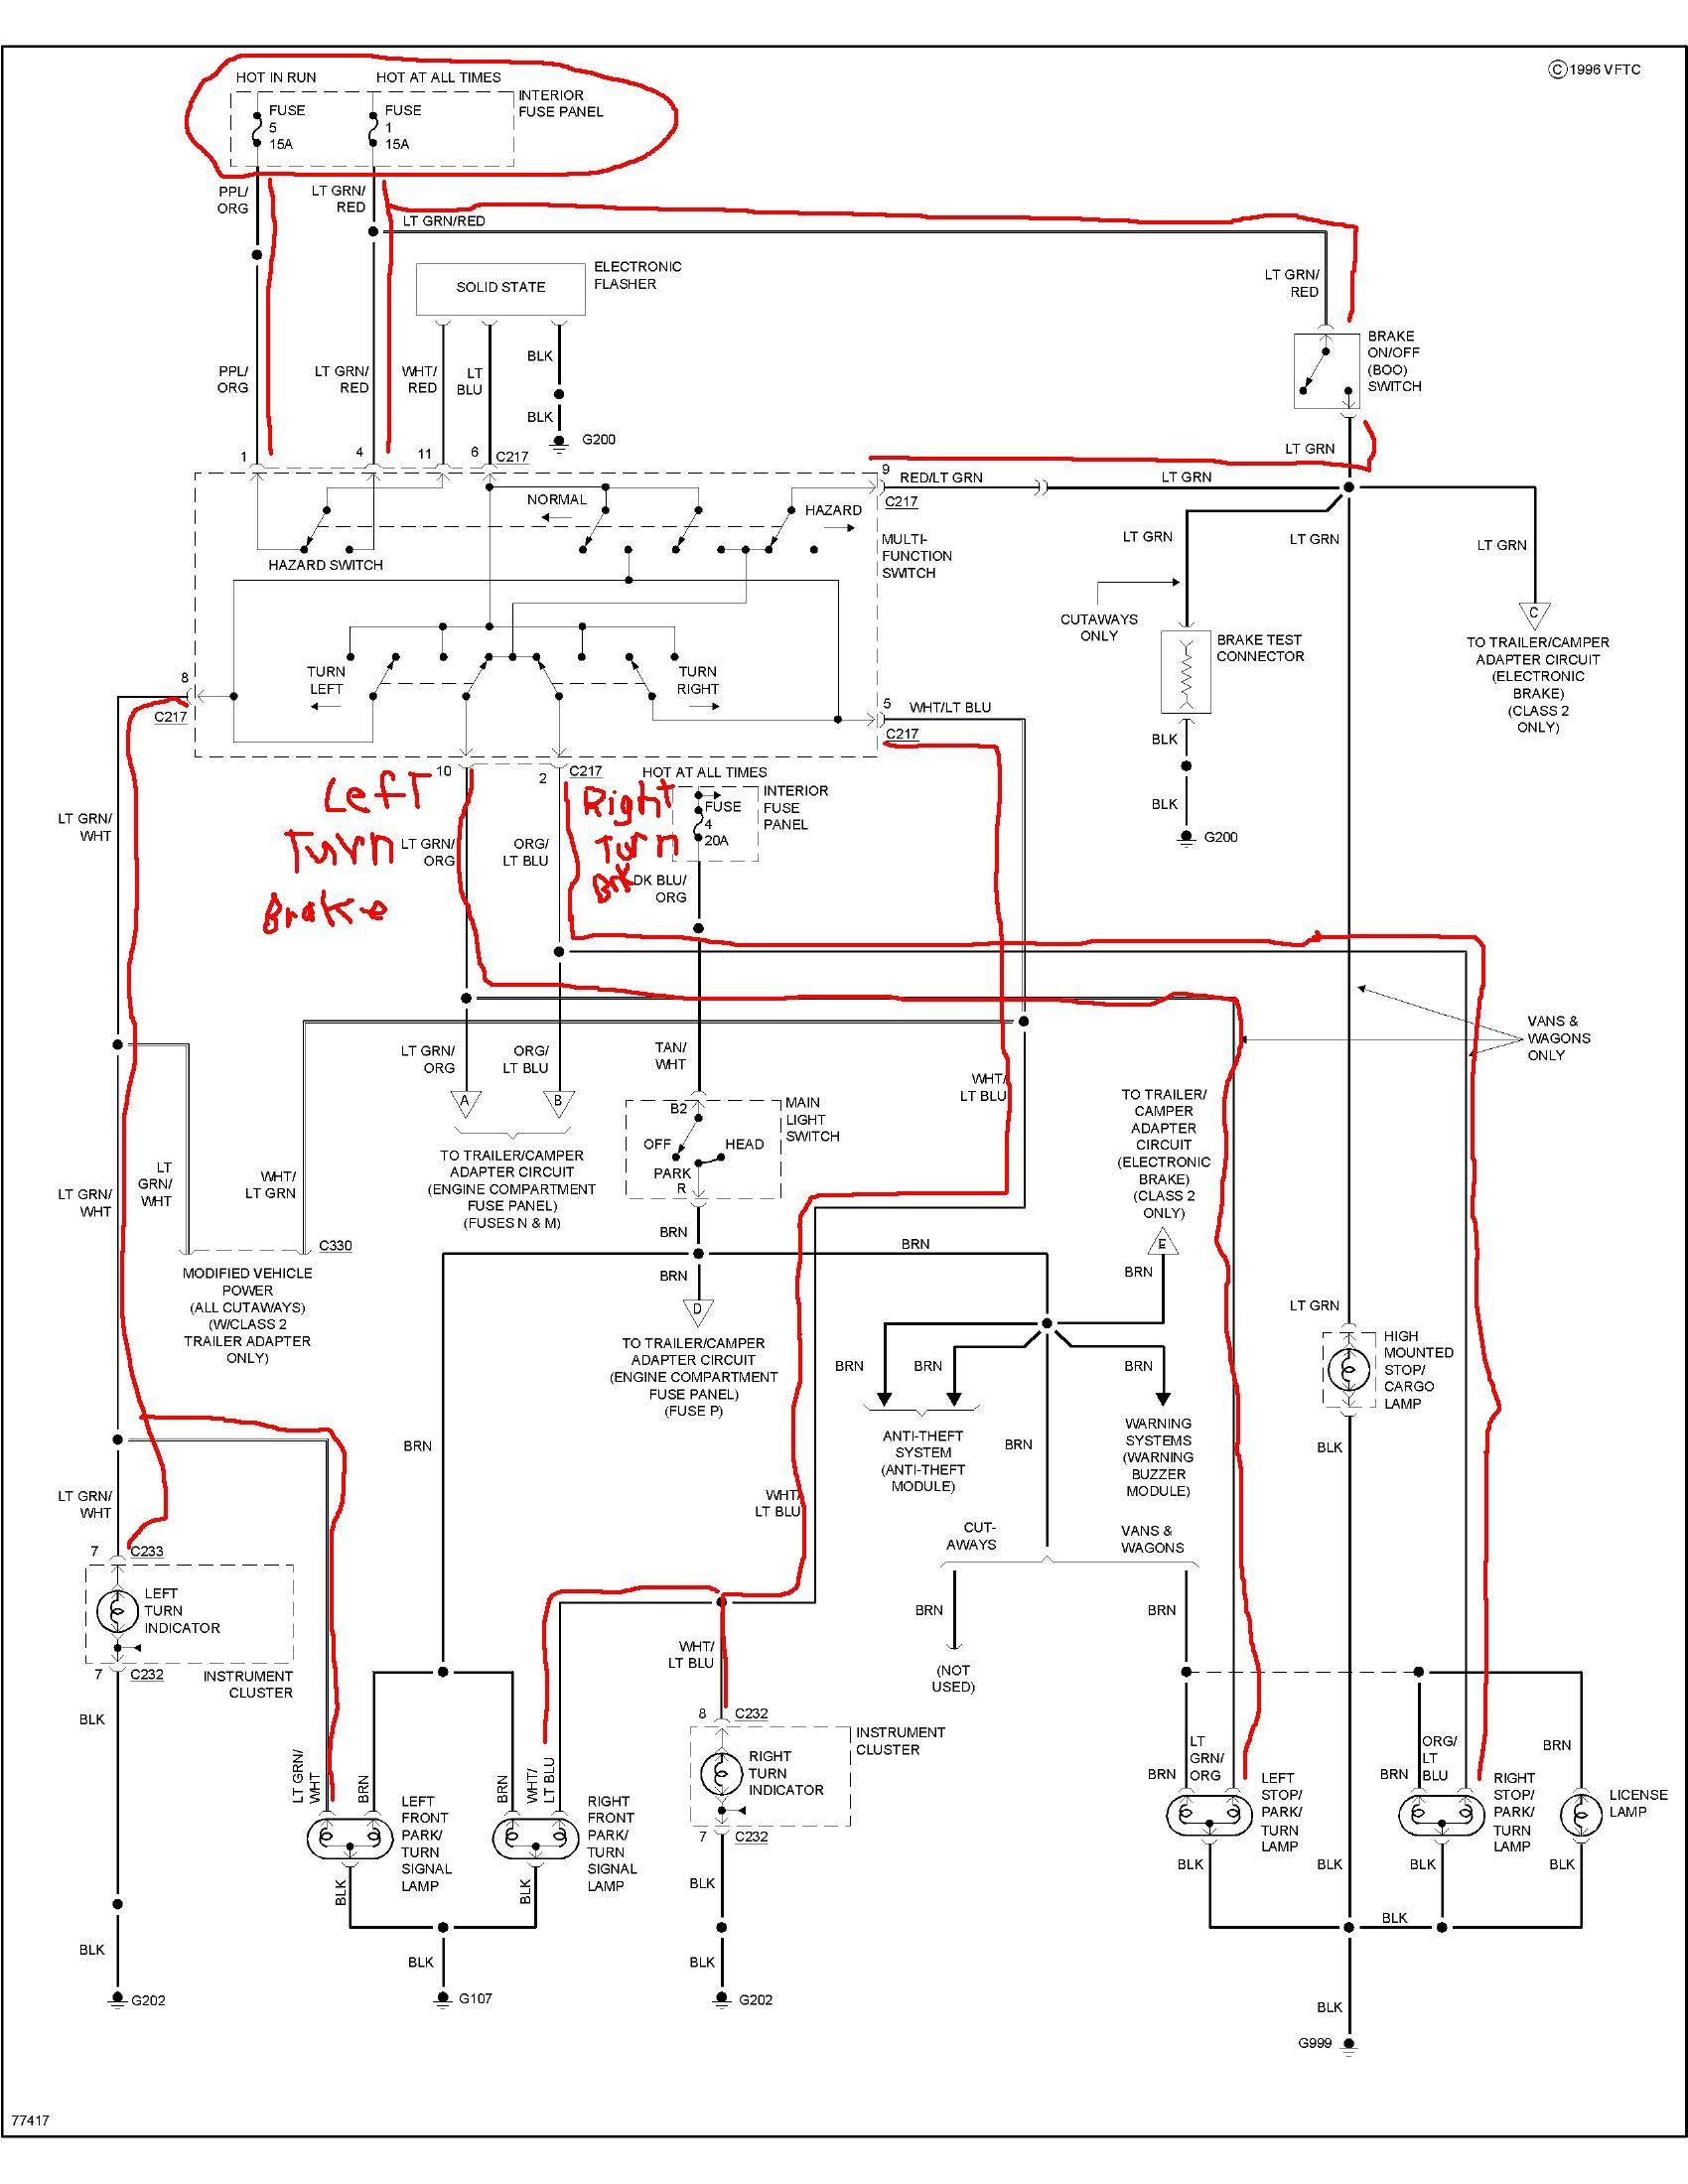 1989 Mastercraft Wiring Diagram 2014 Ford Flex Wiring Diagram Air Bag Ati Loro Jeanjaures37 Fr